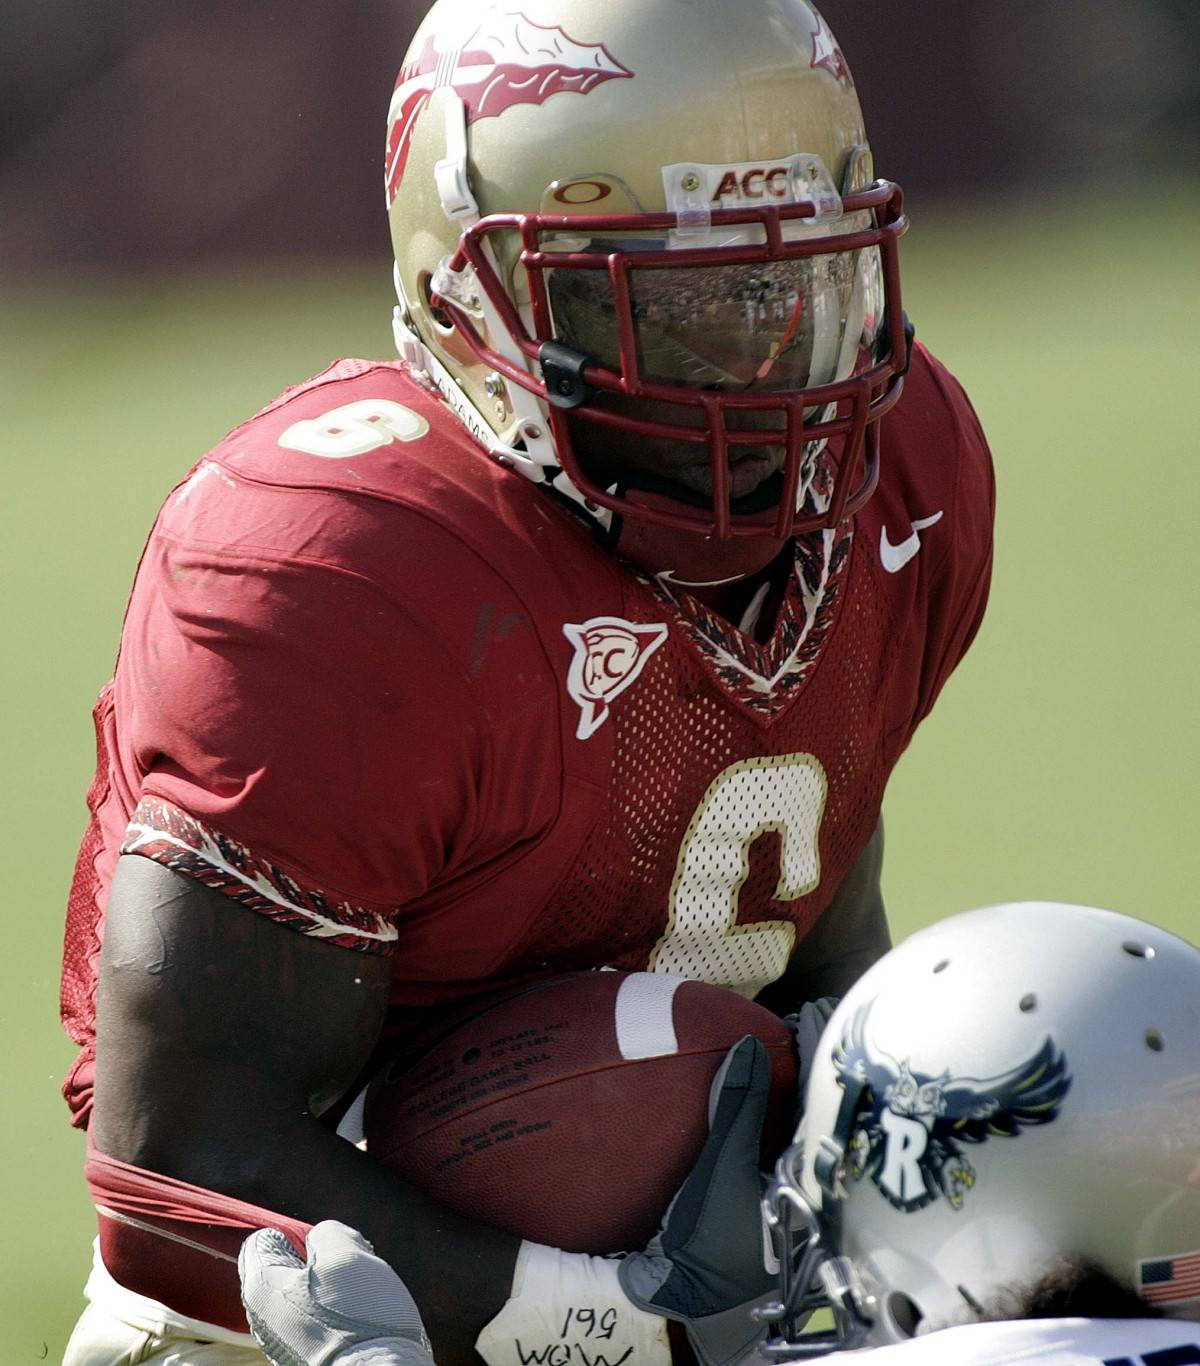 Florida State running back Antone Smith makes a first-quarter run as Rice's Gary Anderson, Jr., bottom, prepares to make the stop during an NCAA football game, Saturday, Sept. 23, 2006, in Tallahassee, Fla.(AP Photo/Phil Coale)